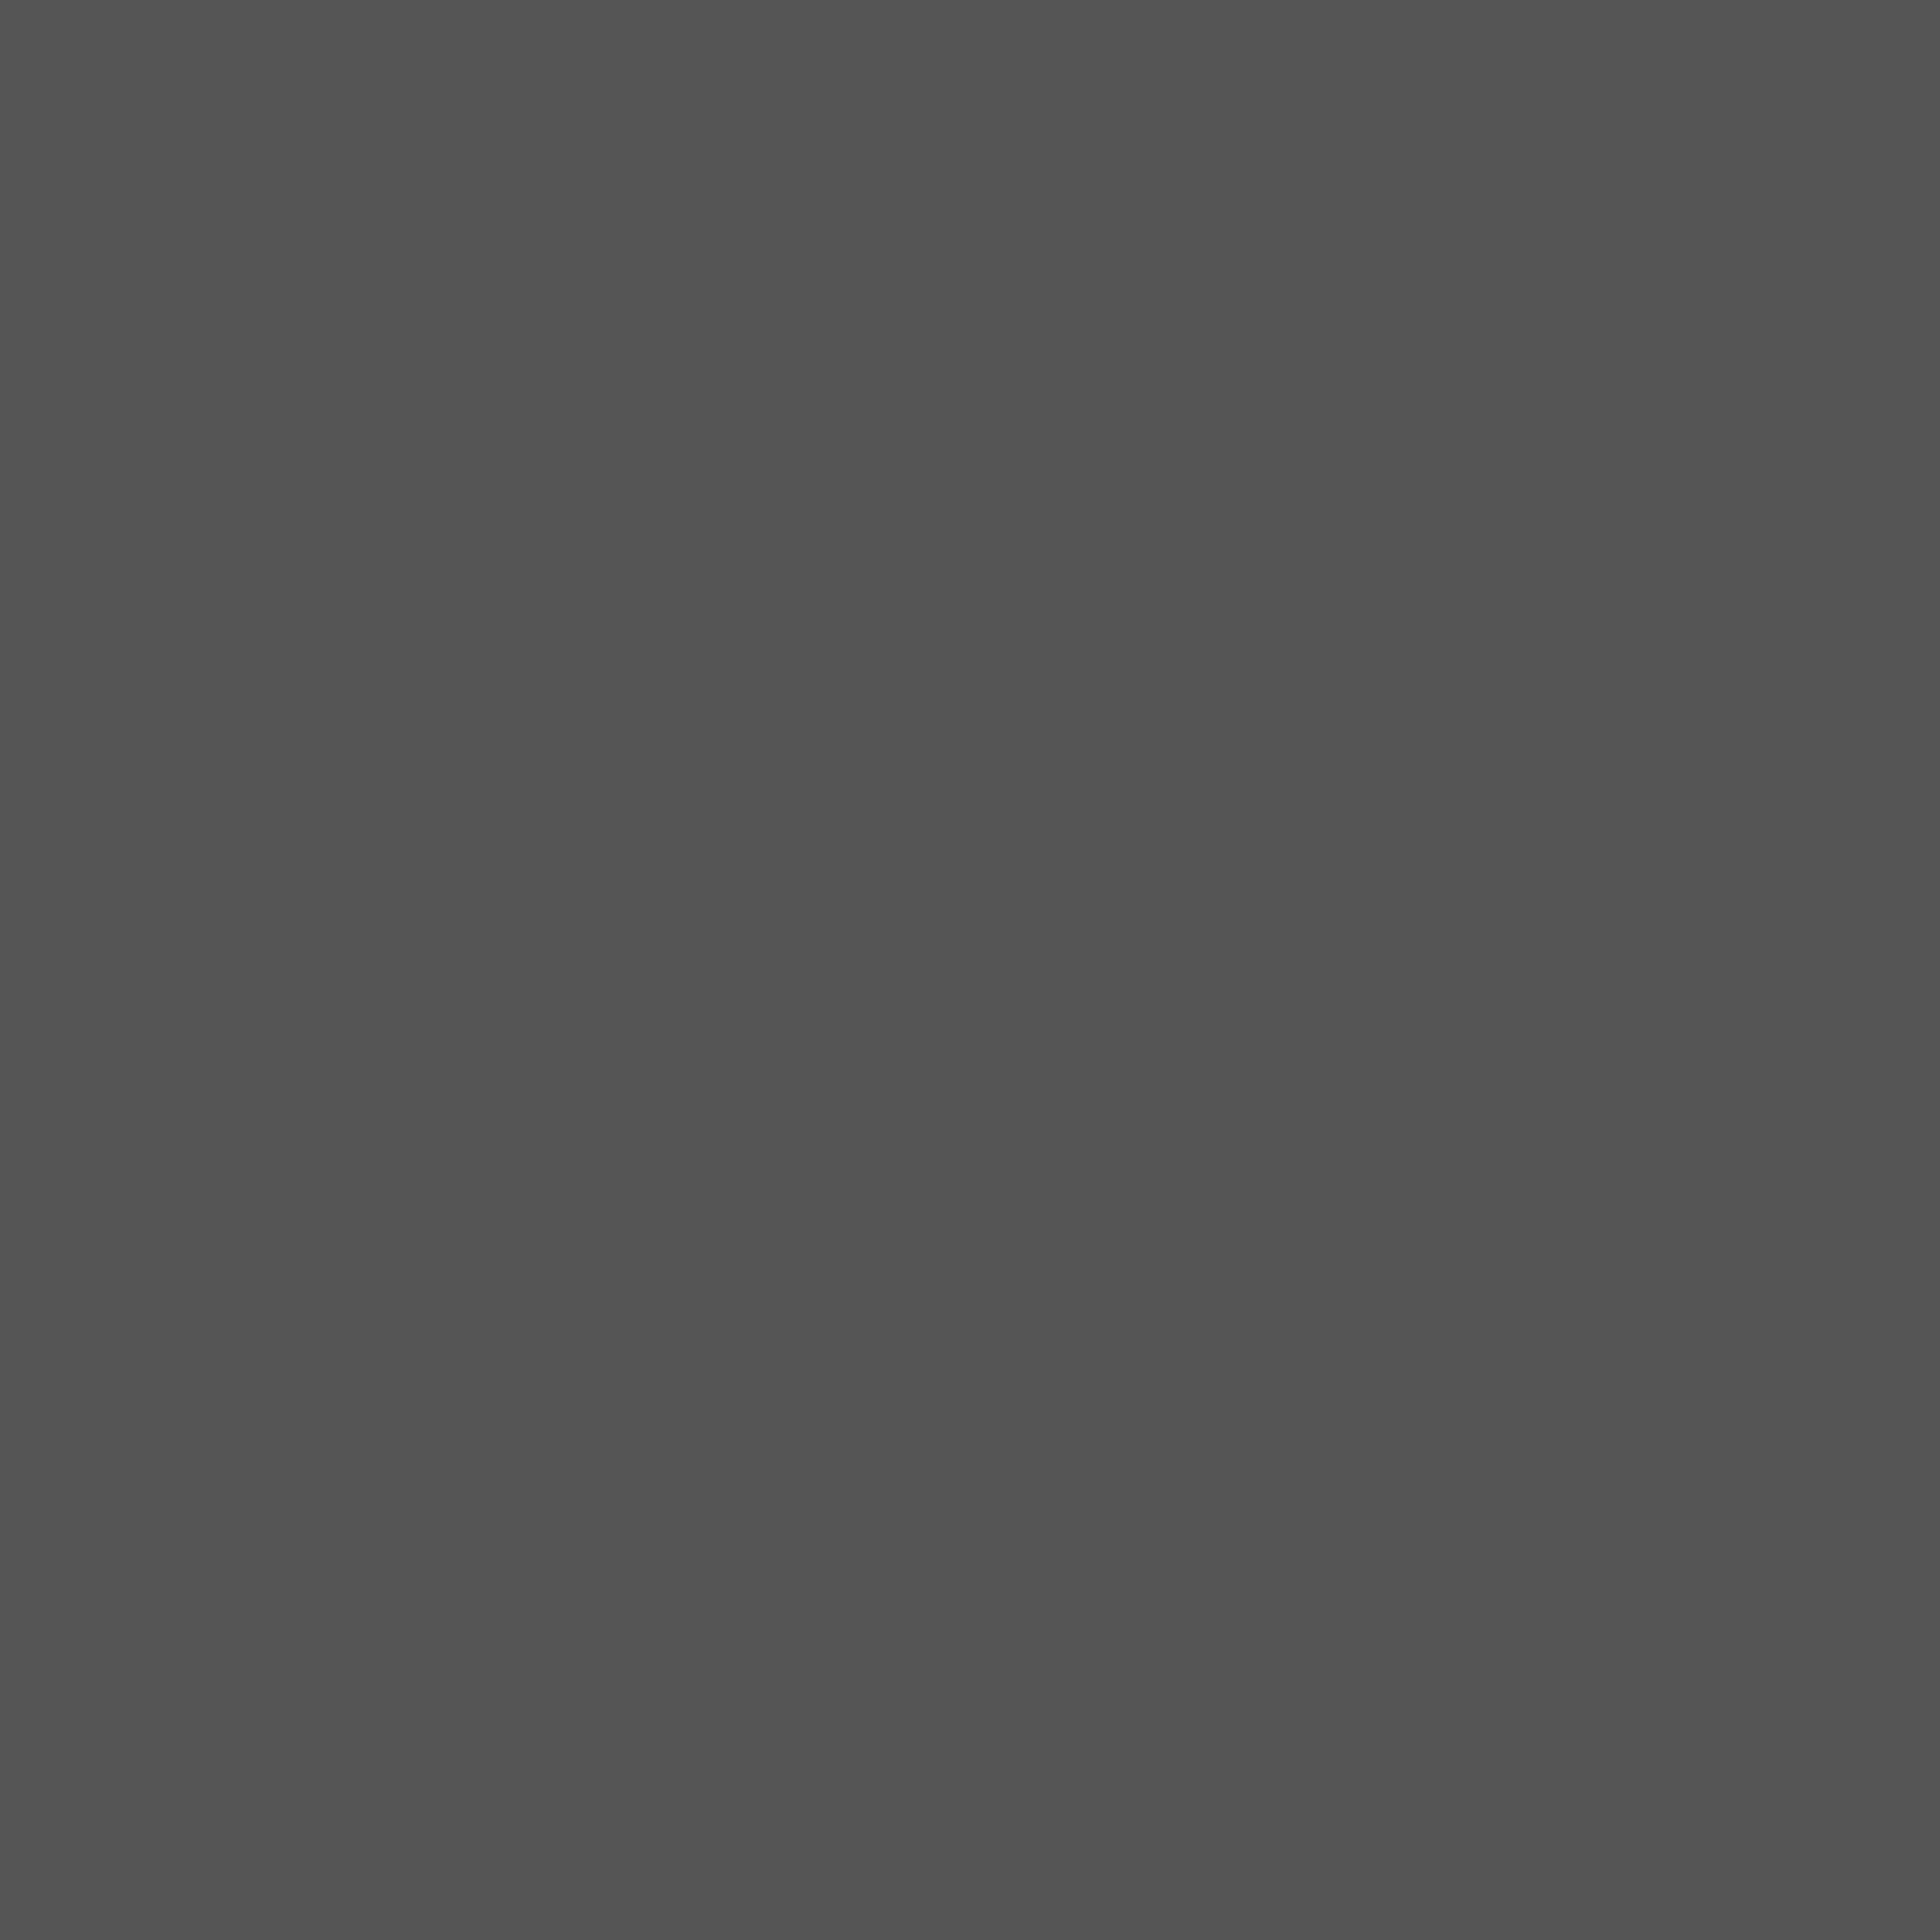 3600x3600 Davys Grey Solid Color Background